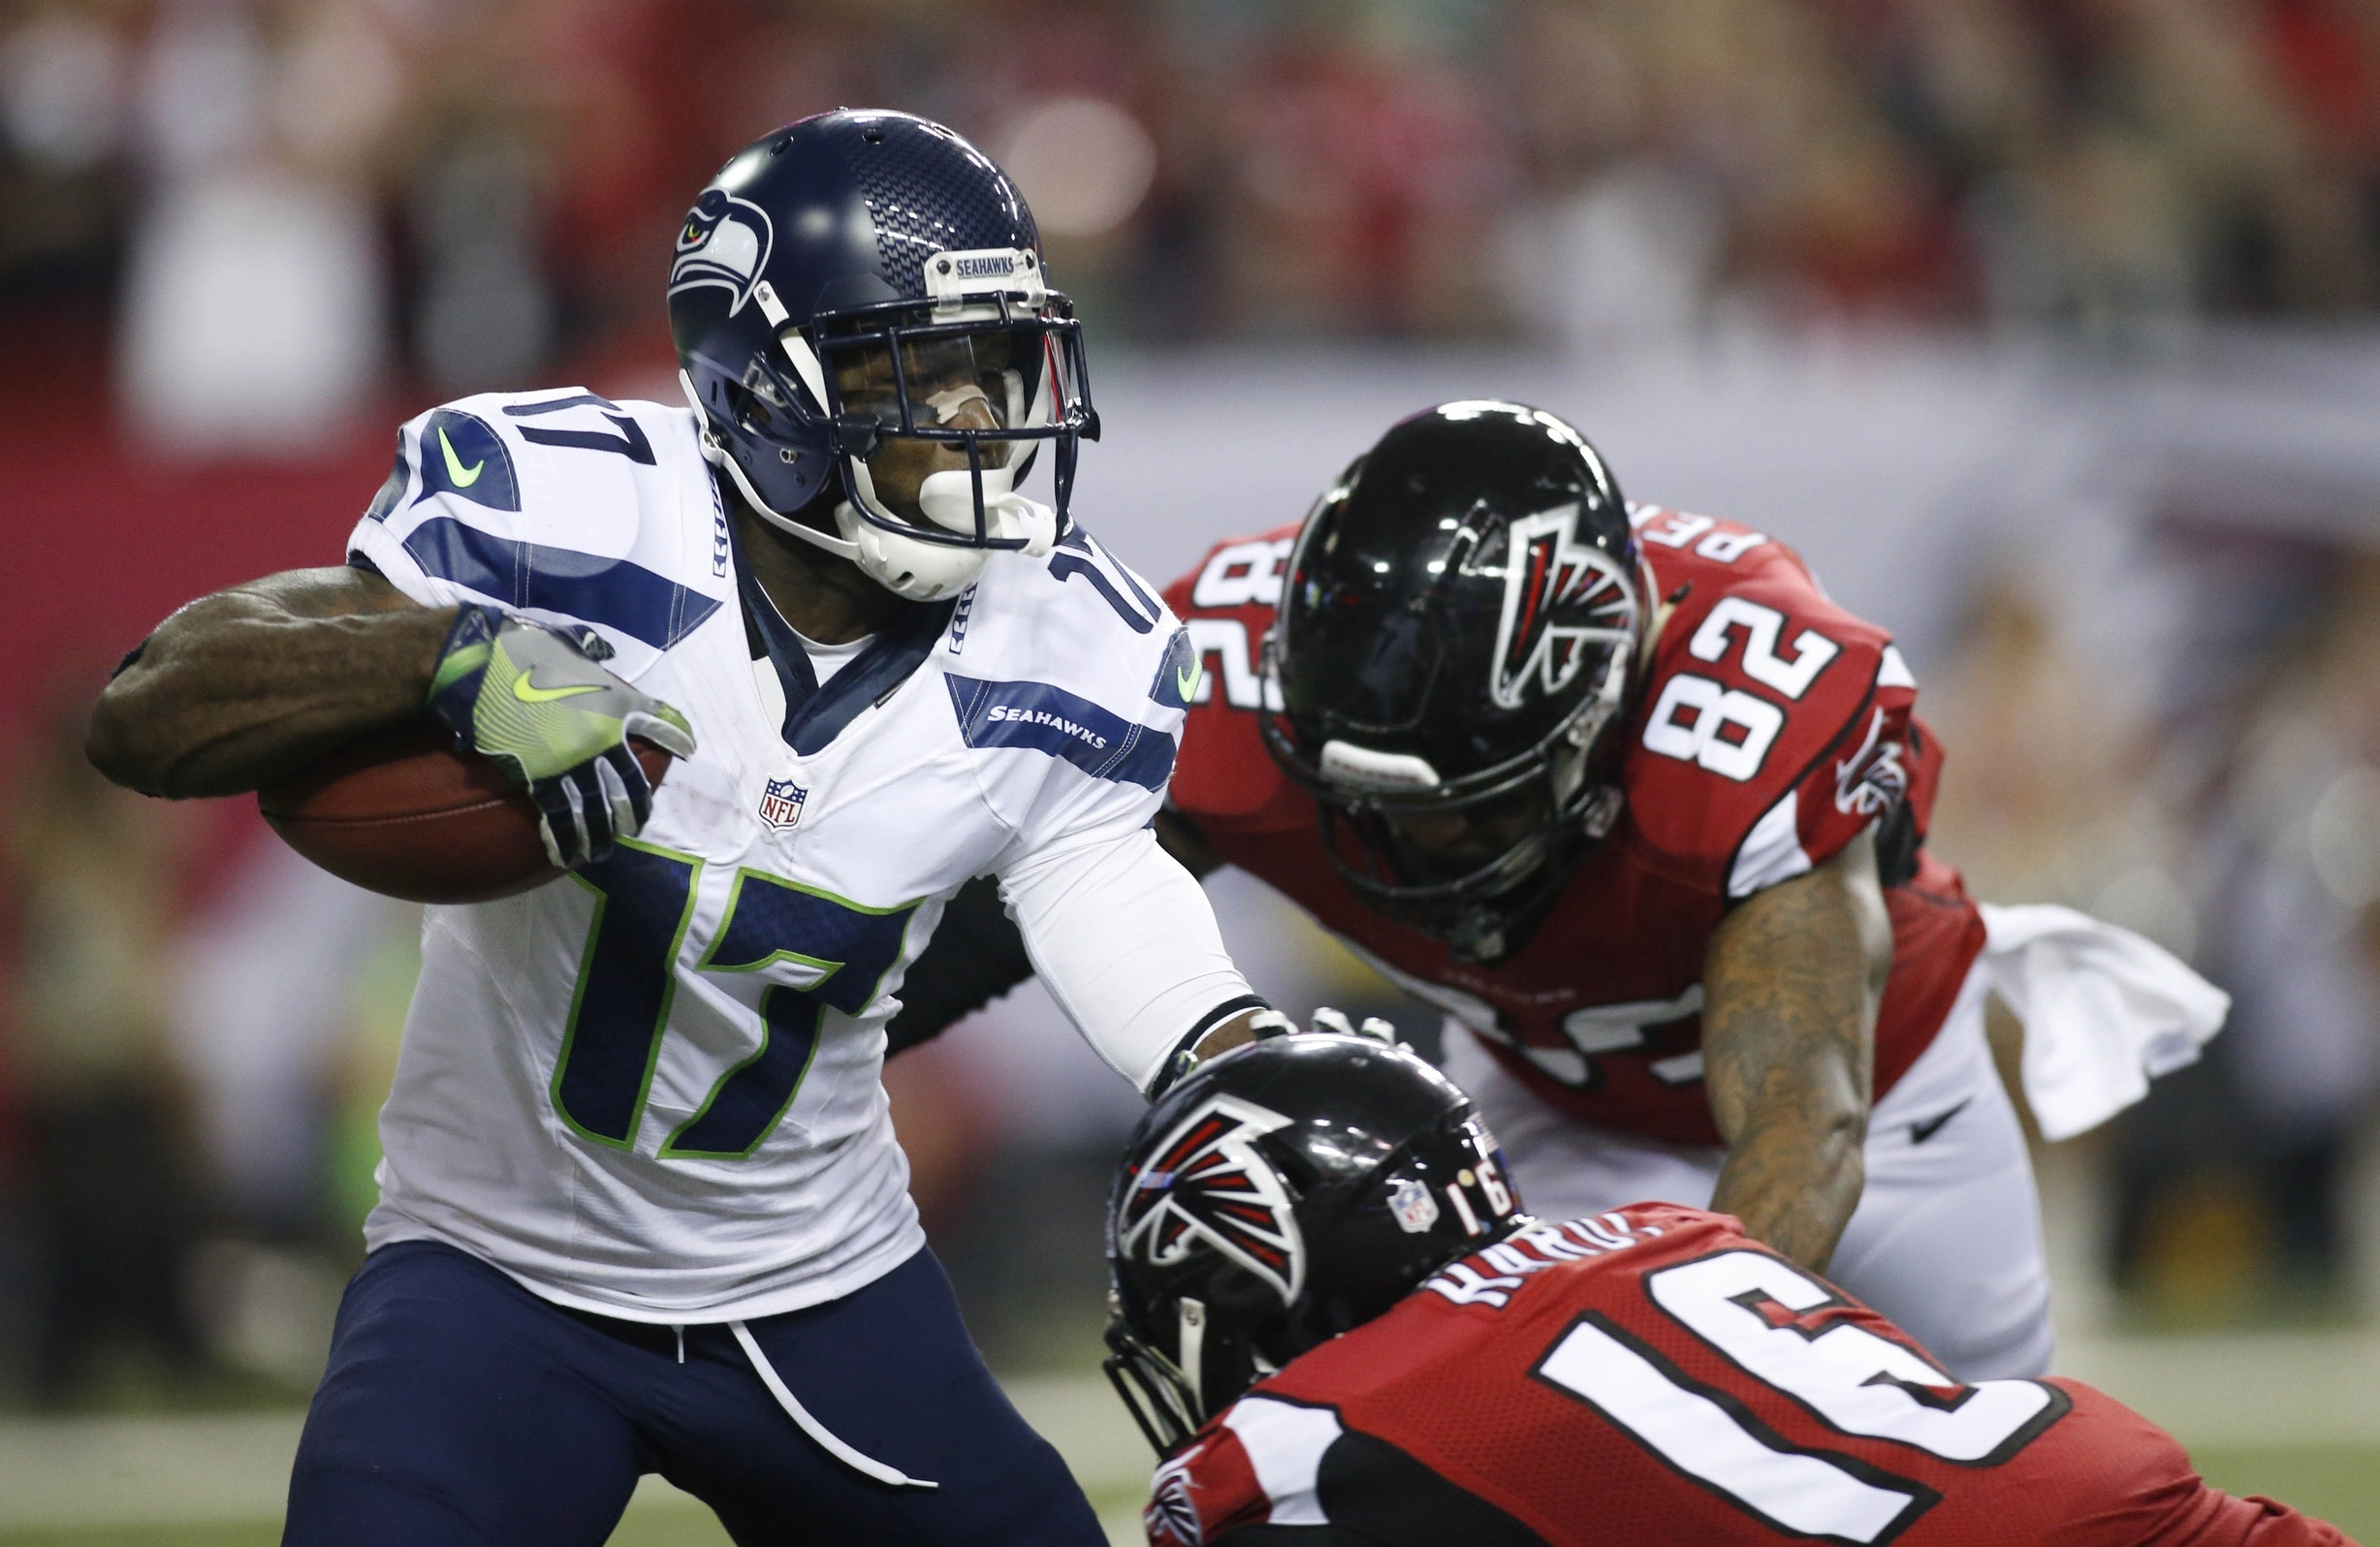 999fce4a6 Special teams ace Devin Hester likely to retire